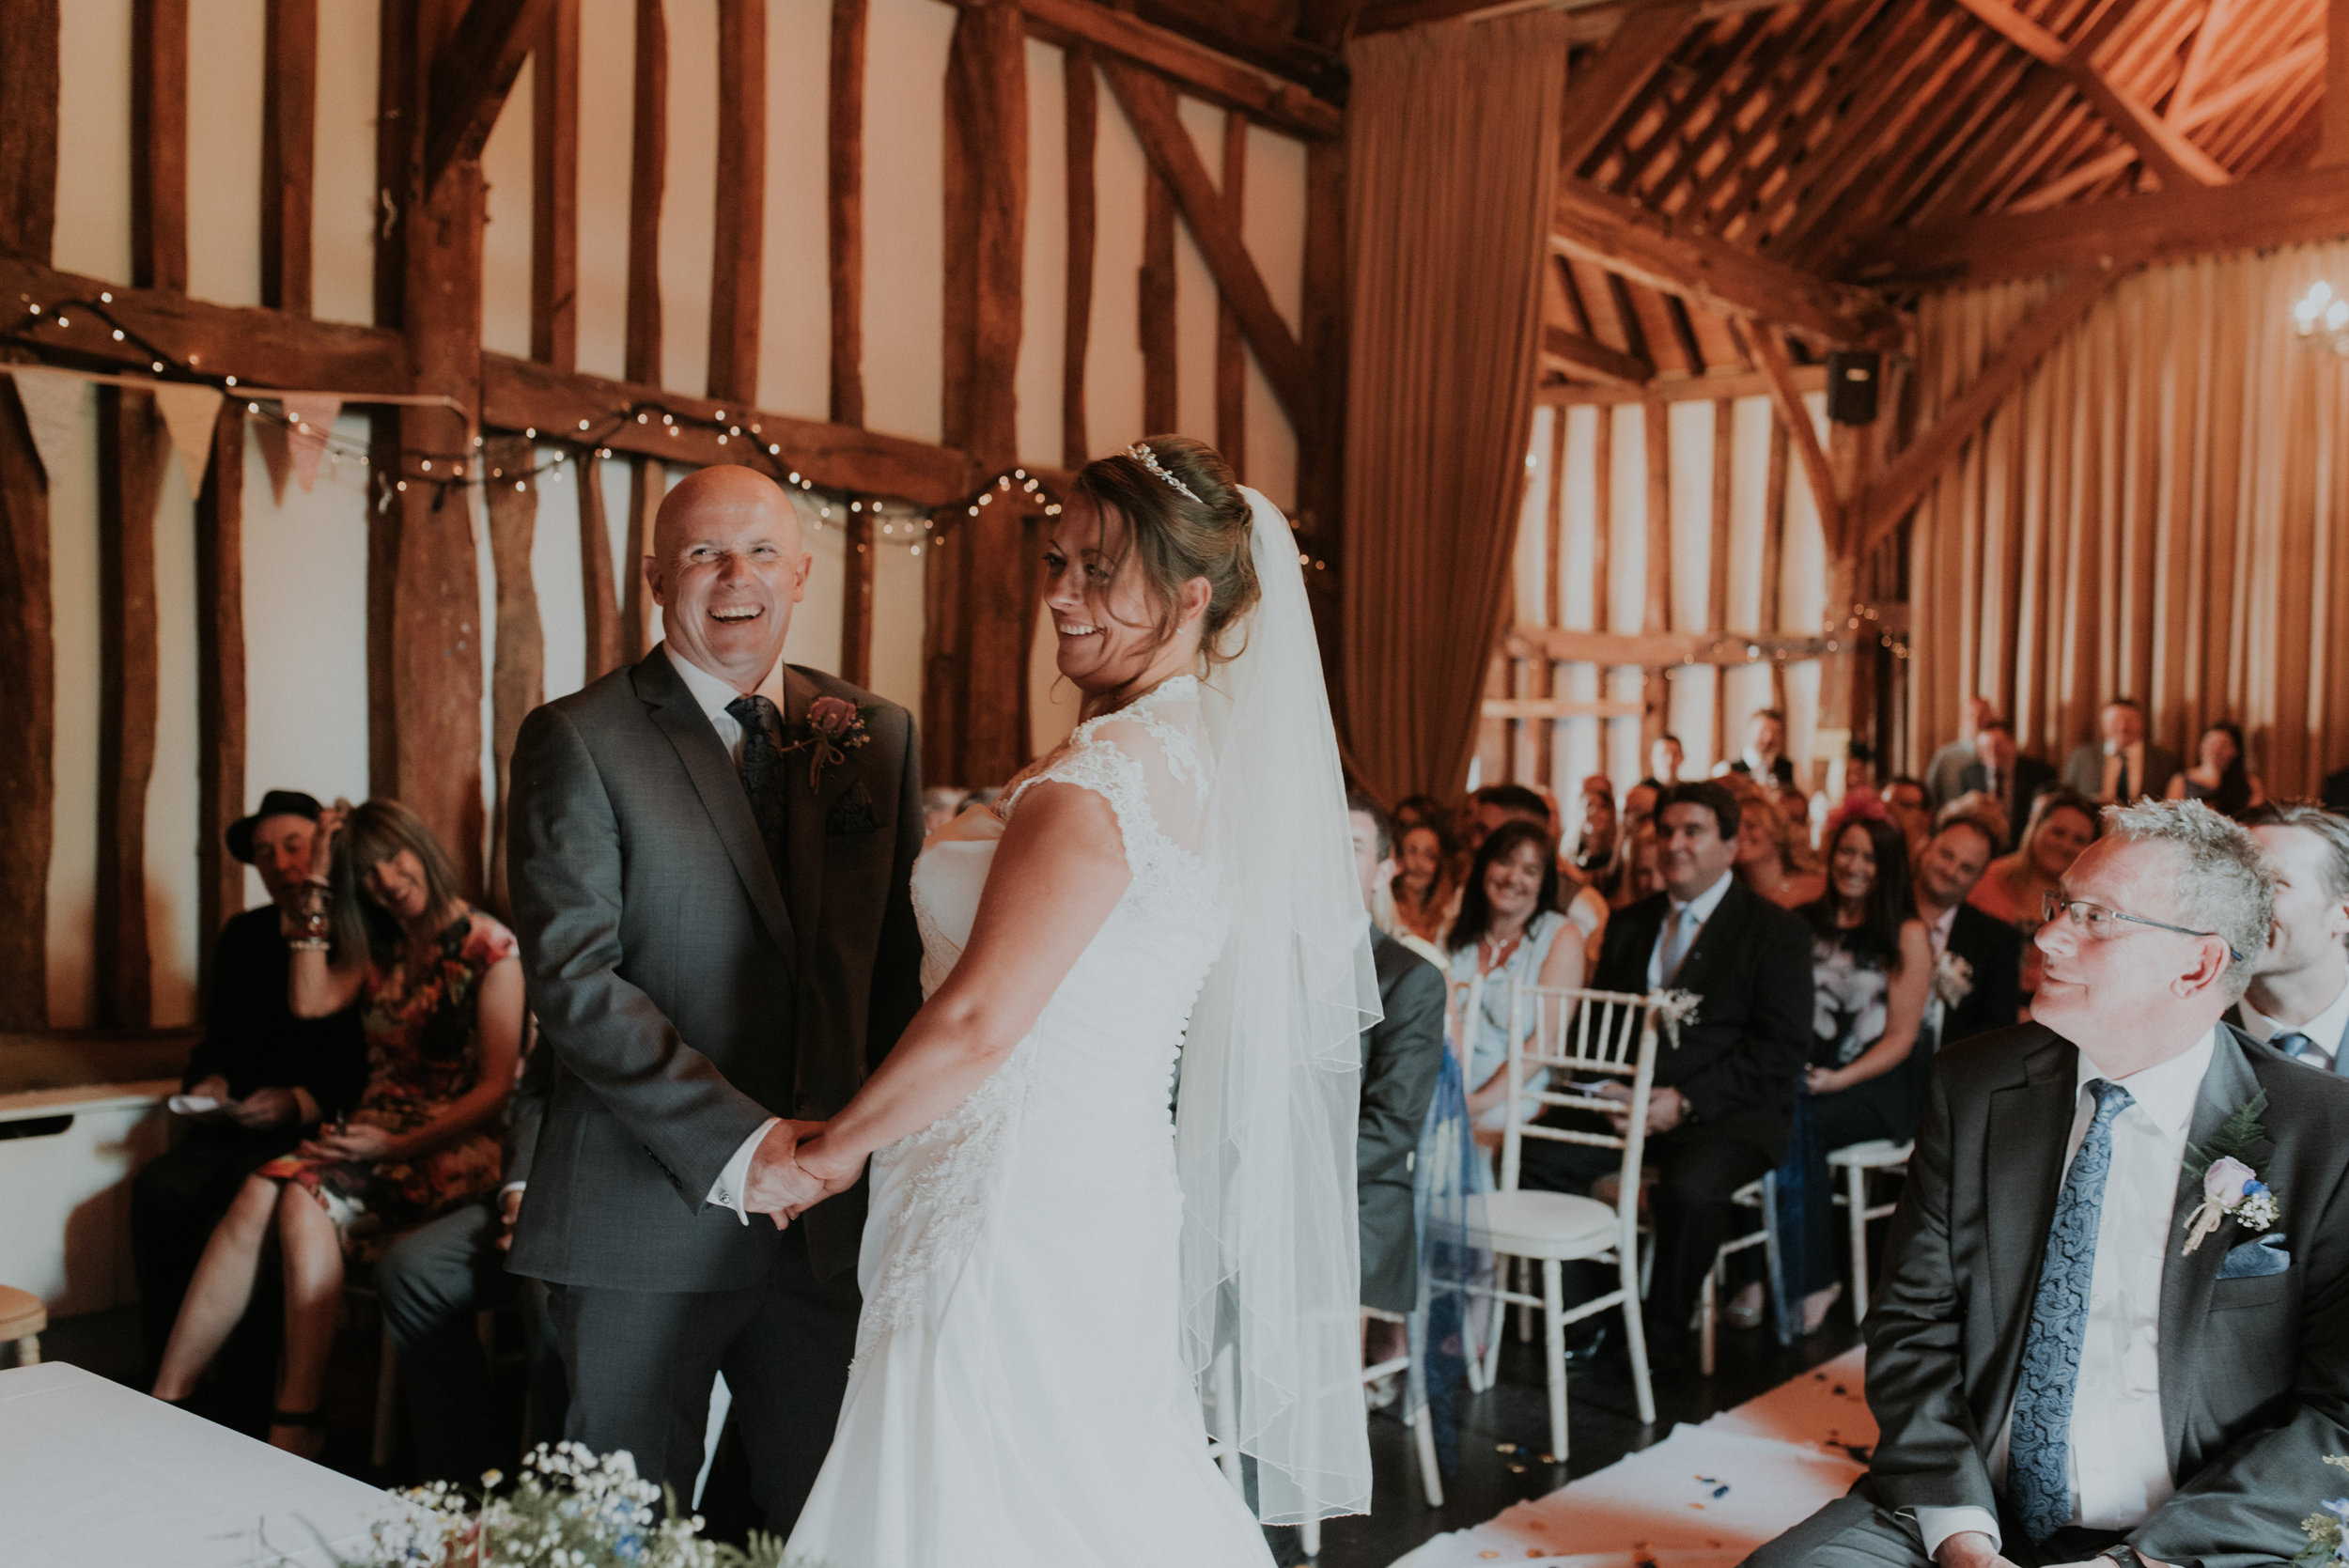 Groom laughing during wedding ceremony in Berkshire barn